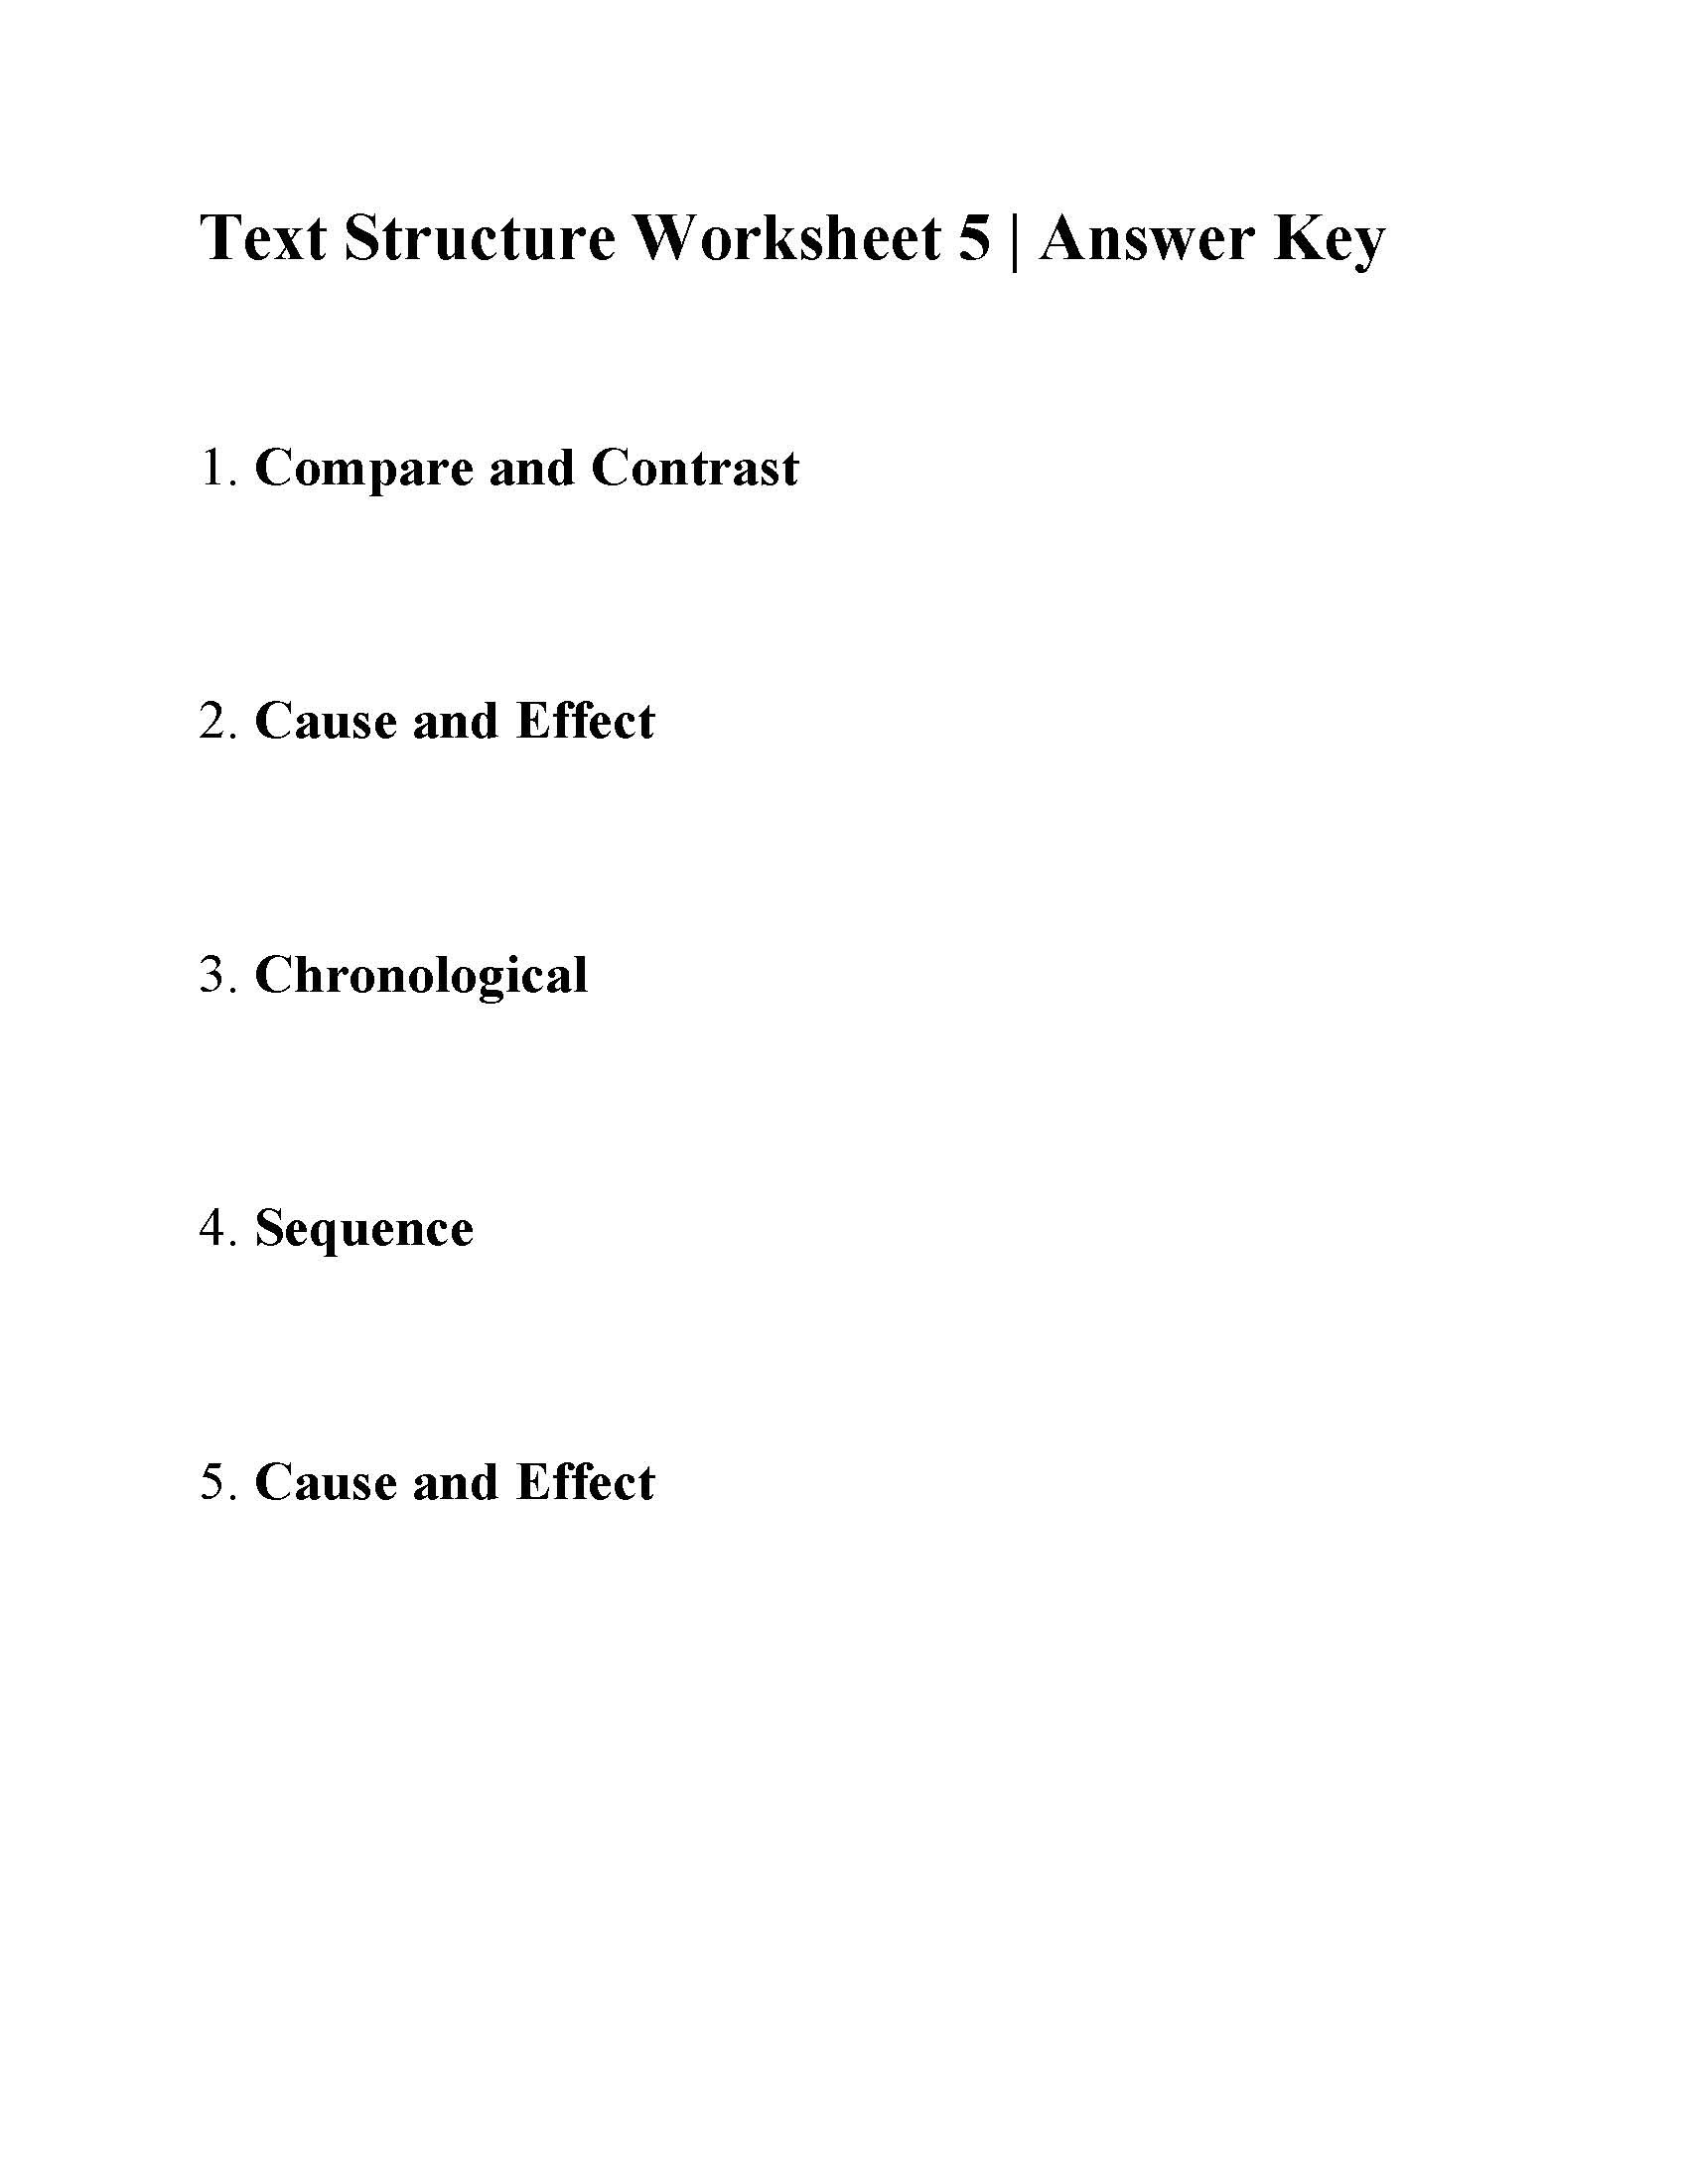 Text Structure 5th Grade Worksheets Text Structure Worksheet 5